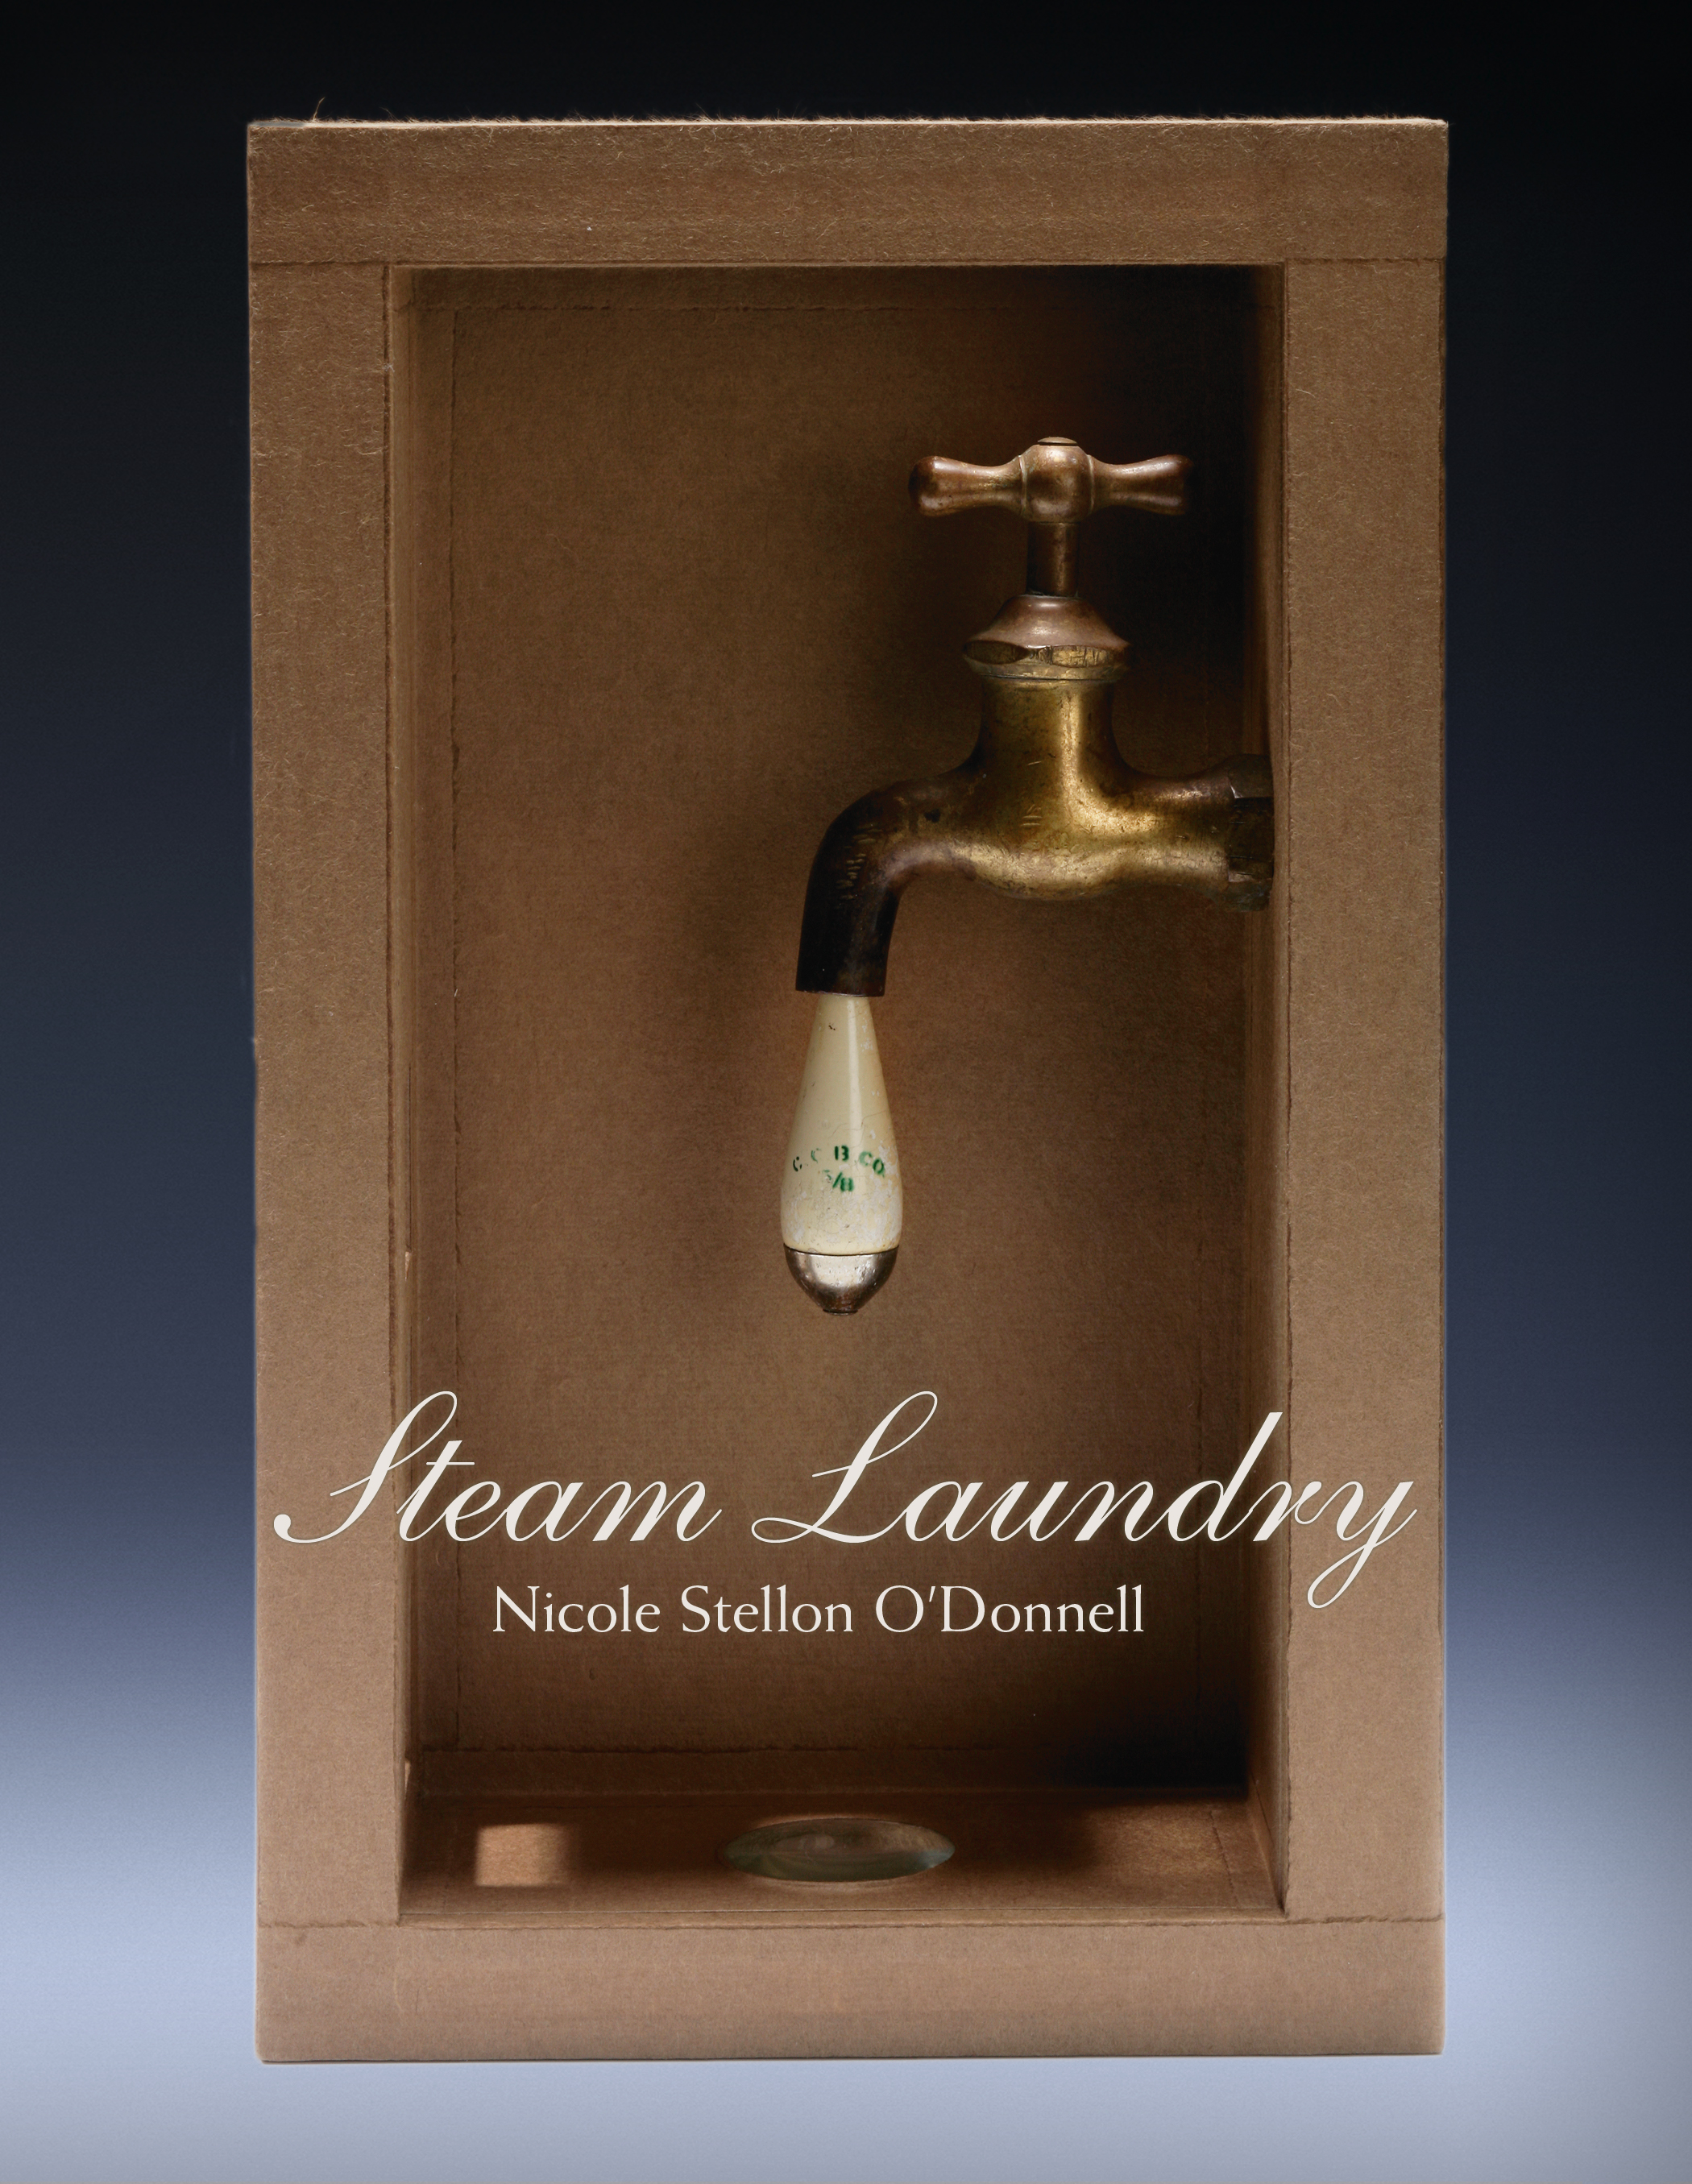 florence steam laundry by nicole - photo#1